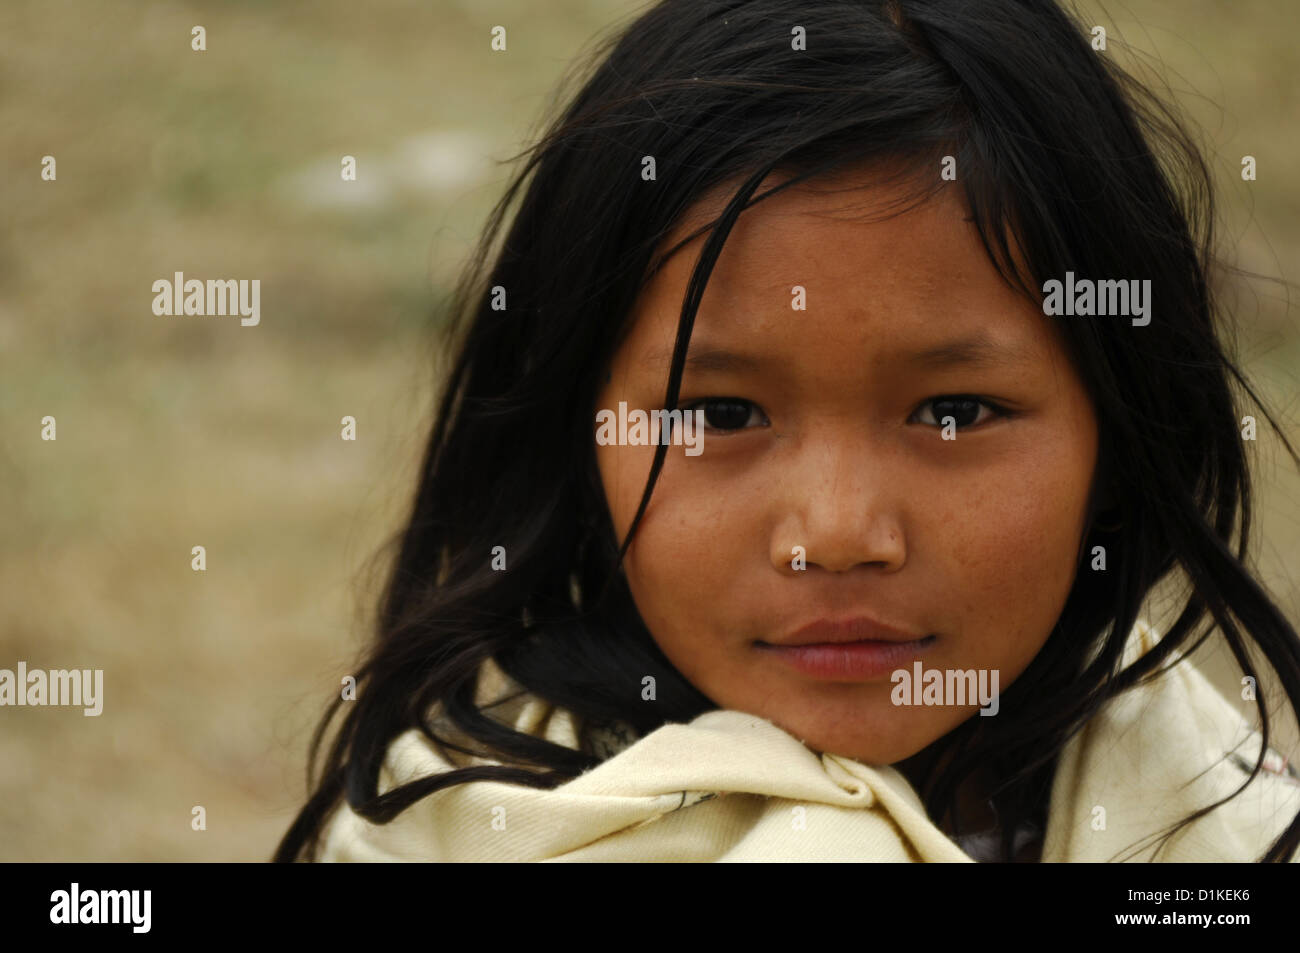 Rural nepal stock photos rural nepal stock images alamy a young girl in a nepalese village rural nepal near fewa tal lake ccuart Gallery